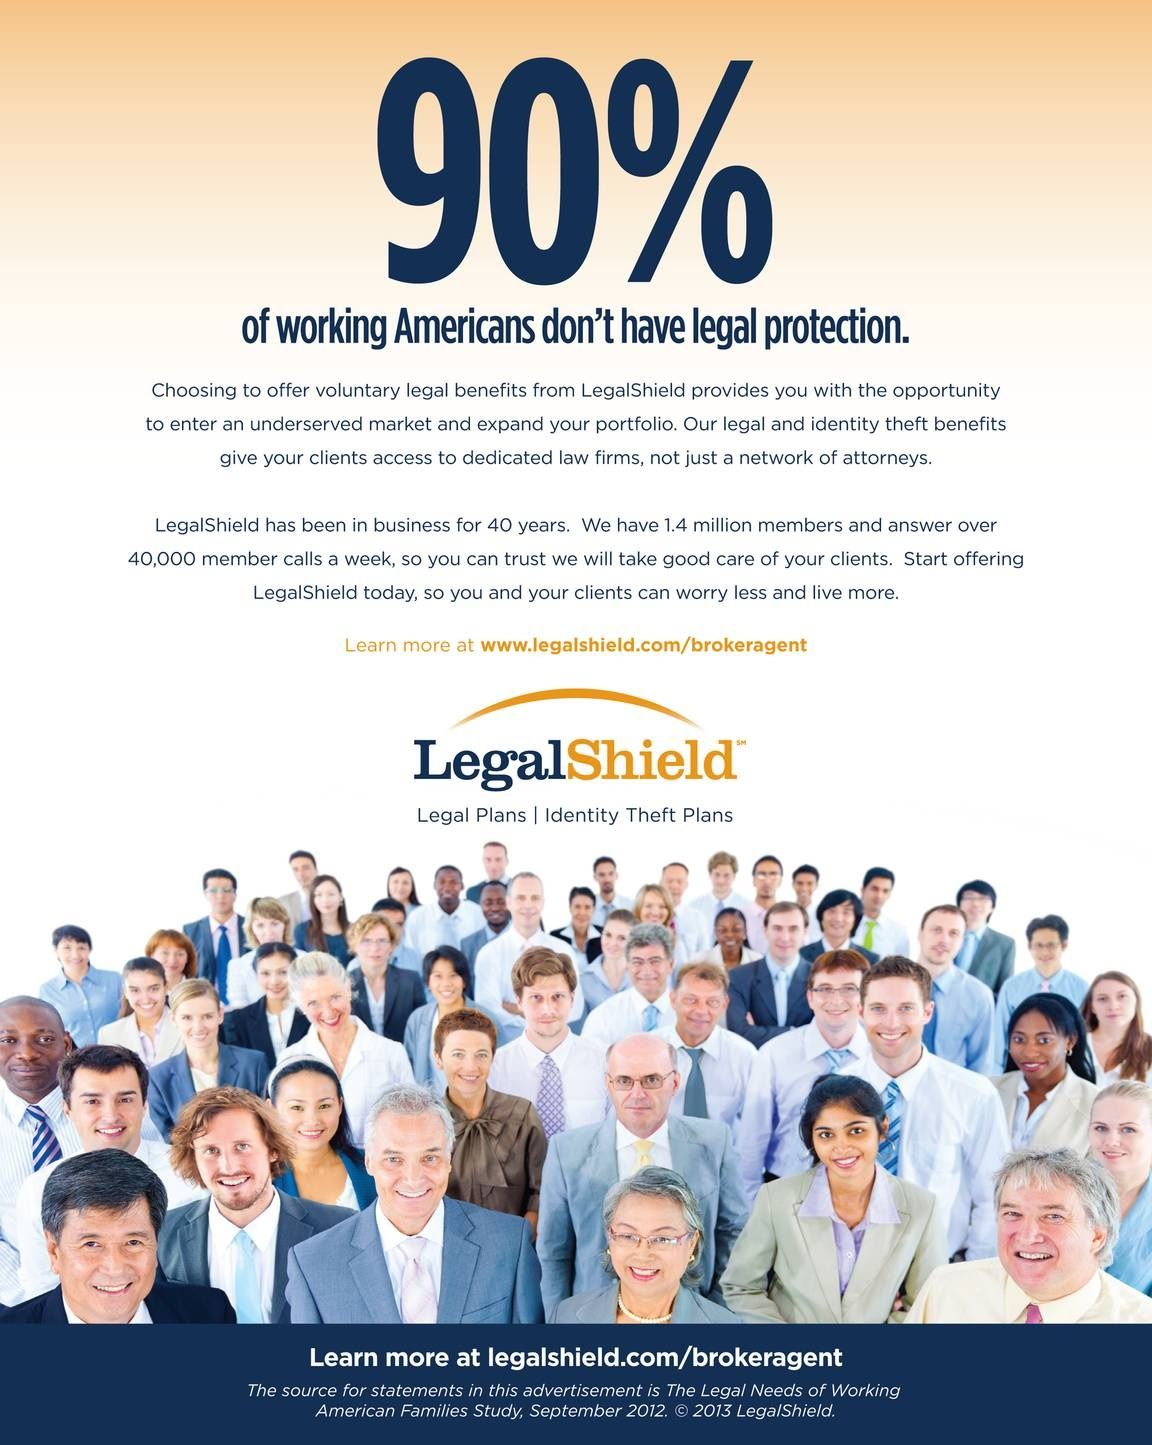 For affordable legal coverage for you, your family, your